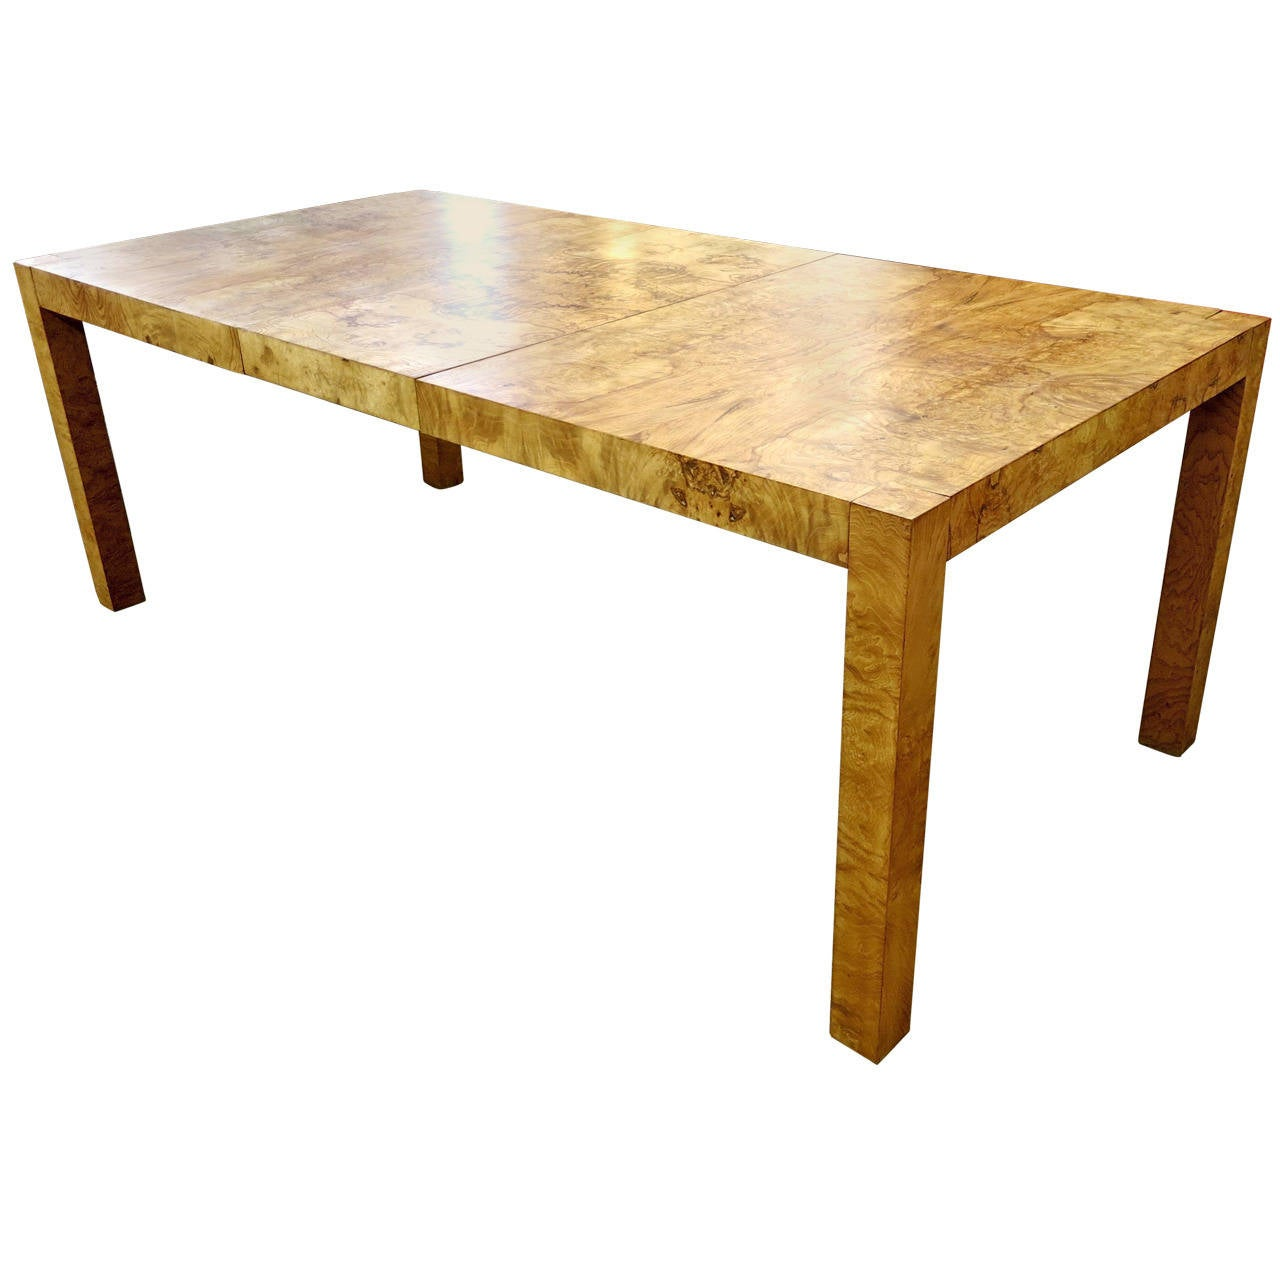 Burled wood or burl wood parsons style mid century modern for Mid century modern dining table